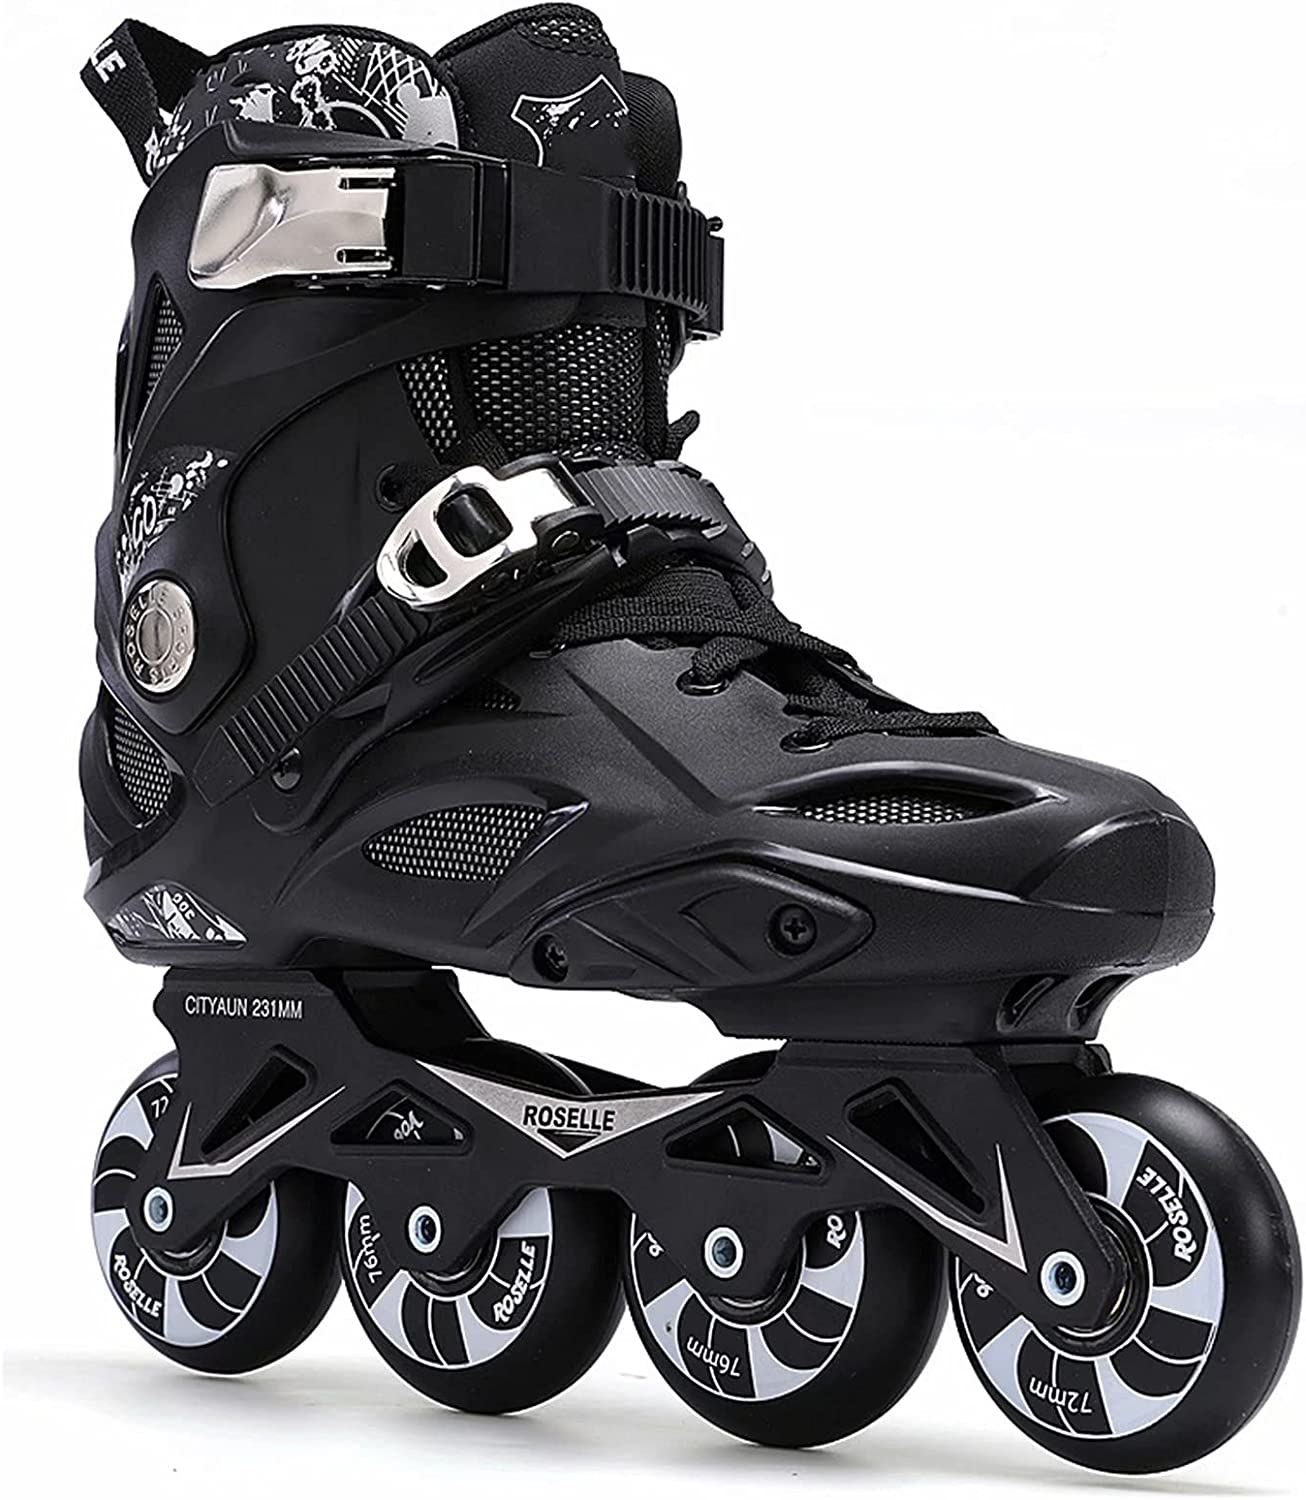 HSTFR Kansas City Mall Inline Skates for Men and Childr Max 57% OFF Women Shoes Speed Skating